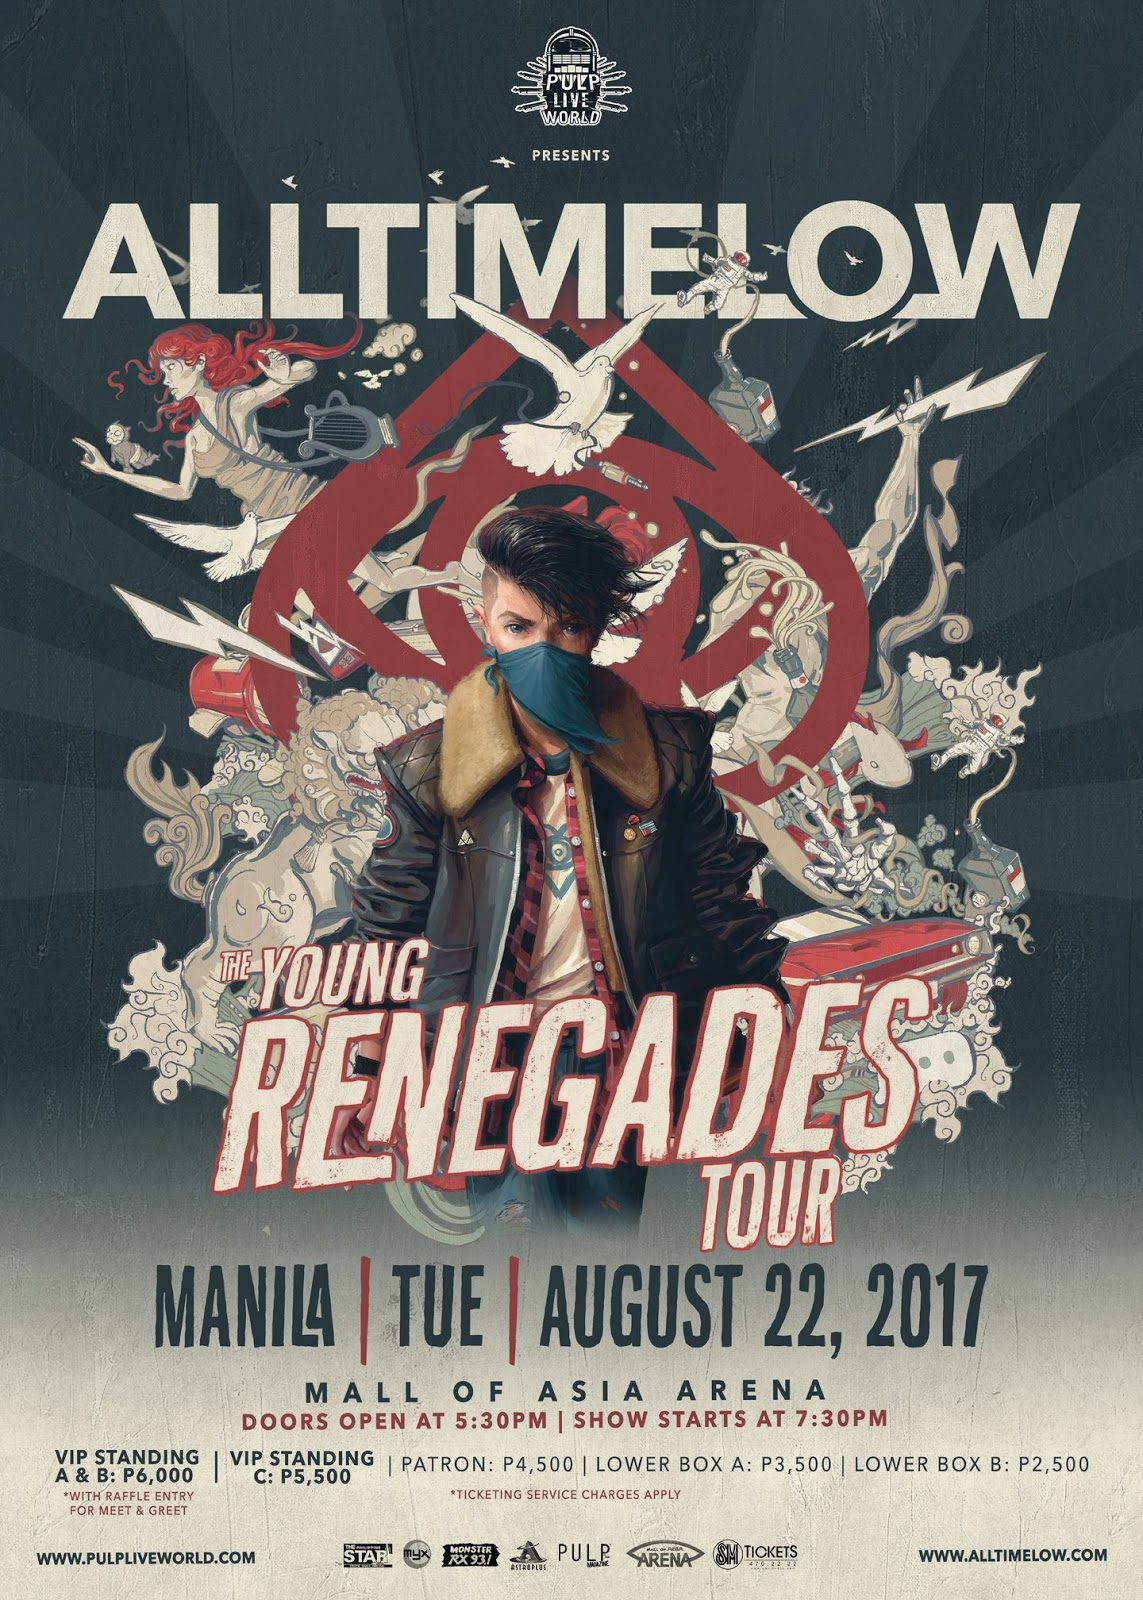 All Time Low Live in Manila